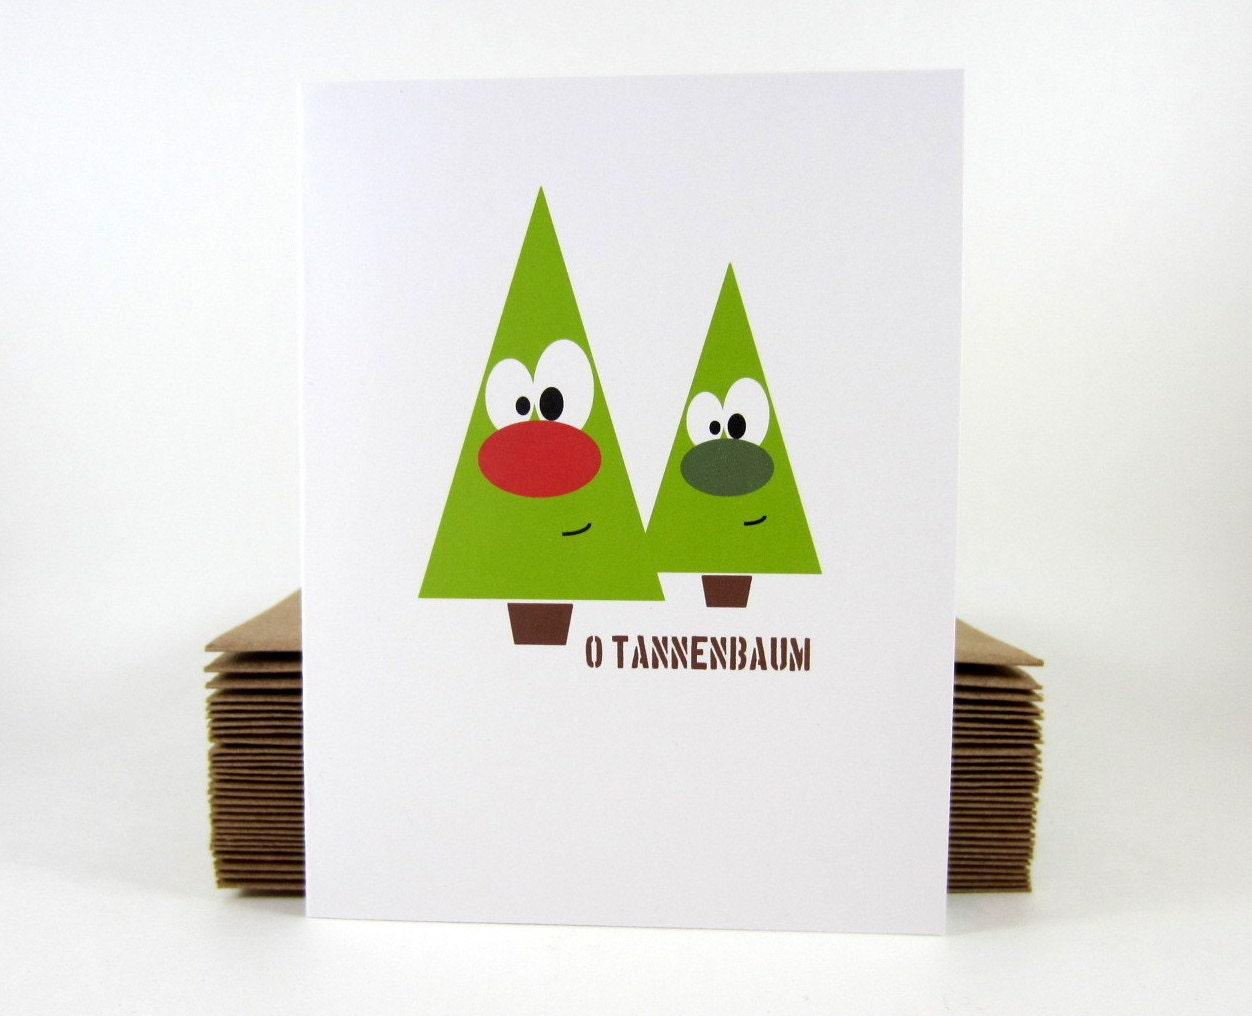 Holiday Card, Christmas Card, O Tannenbaum Green Christmas Tree - Single - craftedbylindy